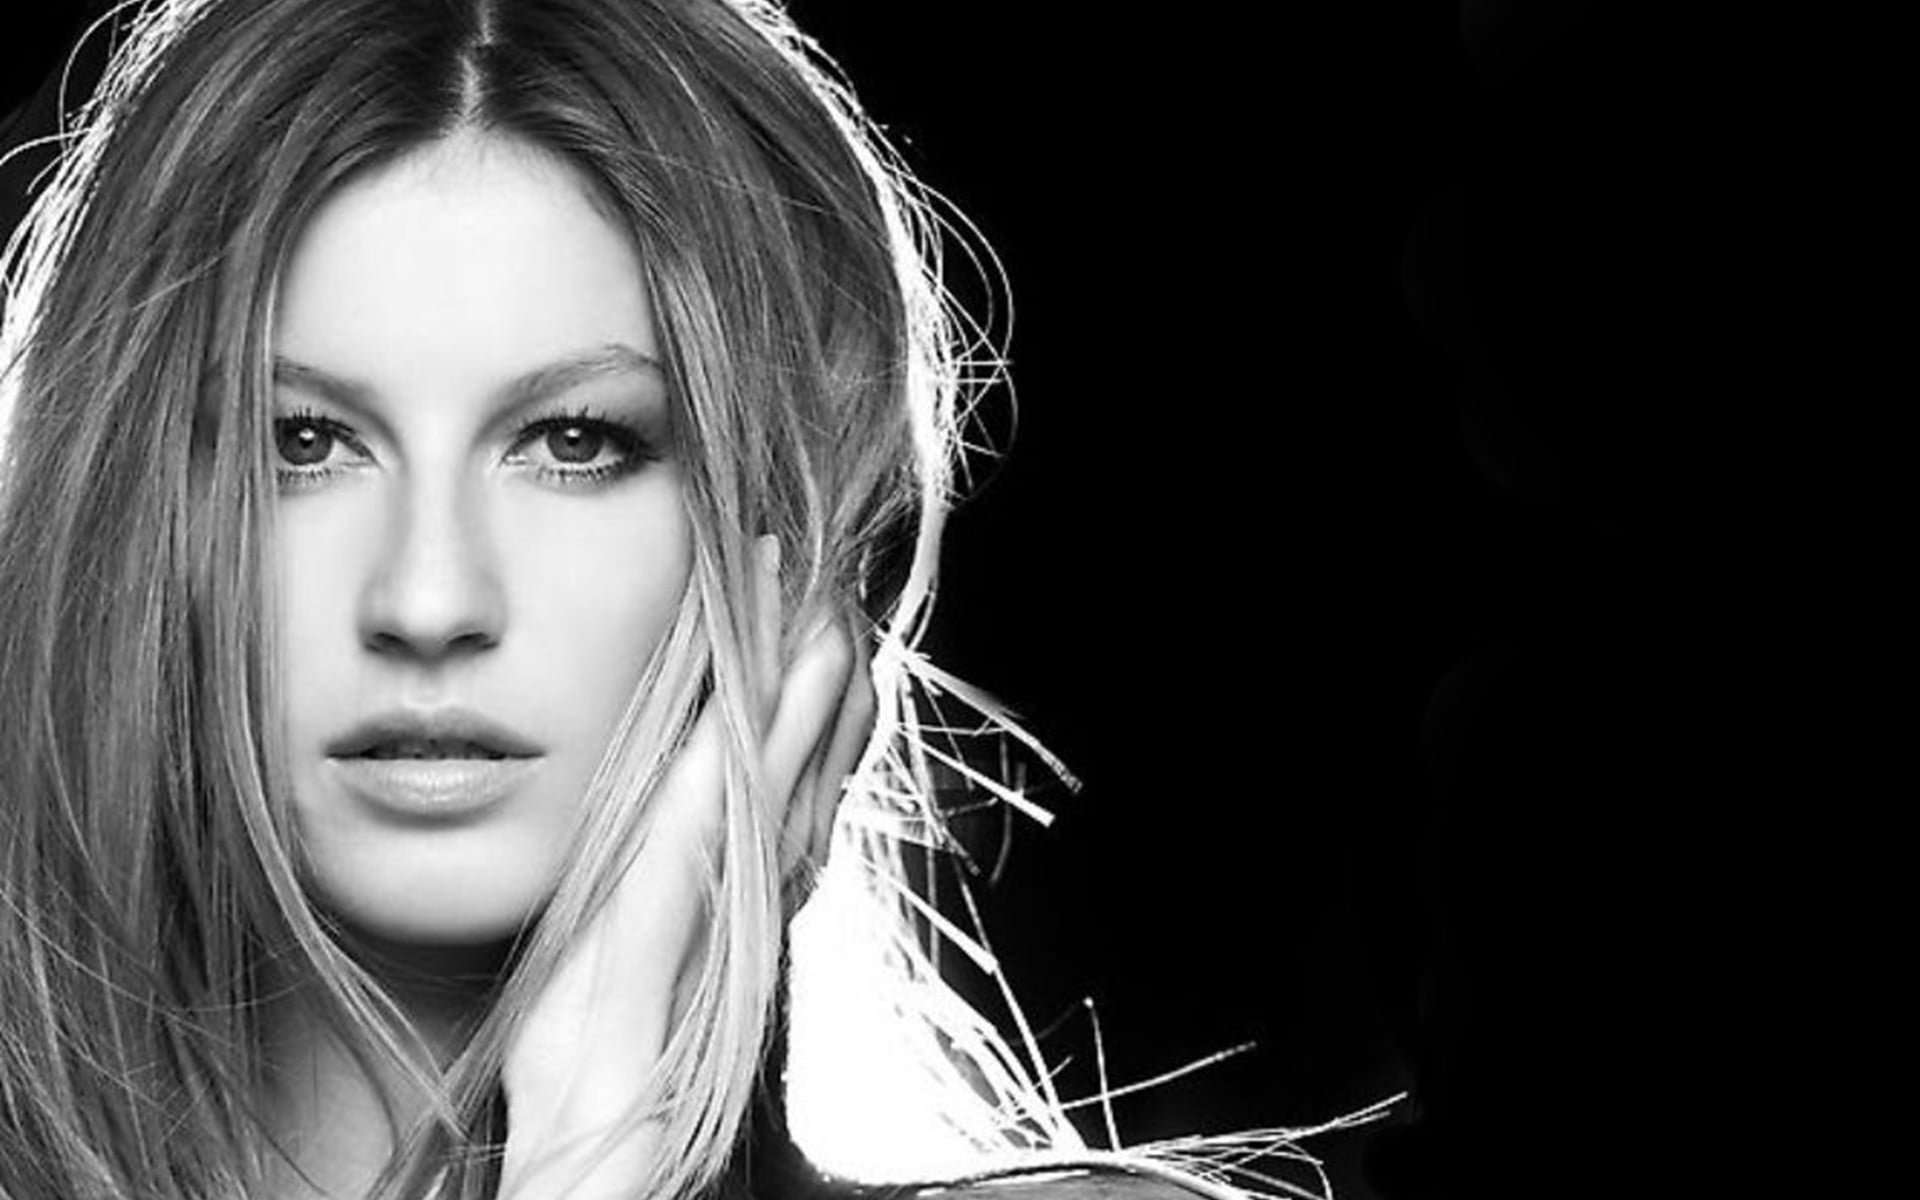 Gisele Bundchen Widescreen for desktop